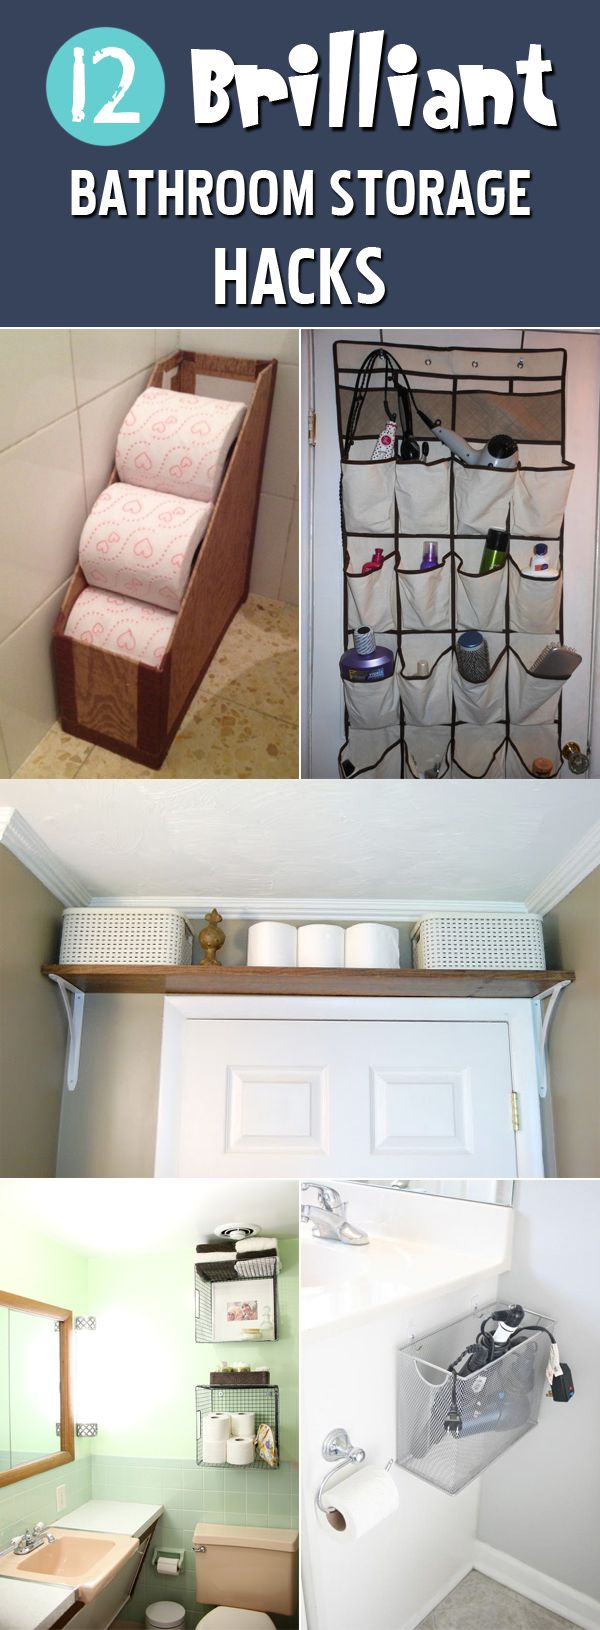 Delightful Try These Insanely Clever Bathroom Storage Hacks To Make The Most Of Your  Space And Get